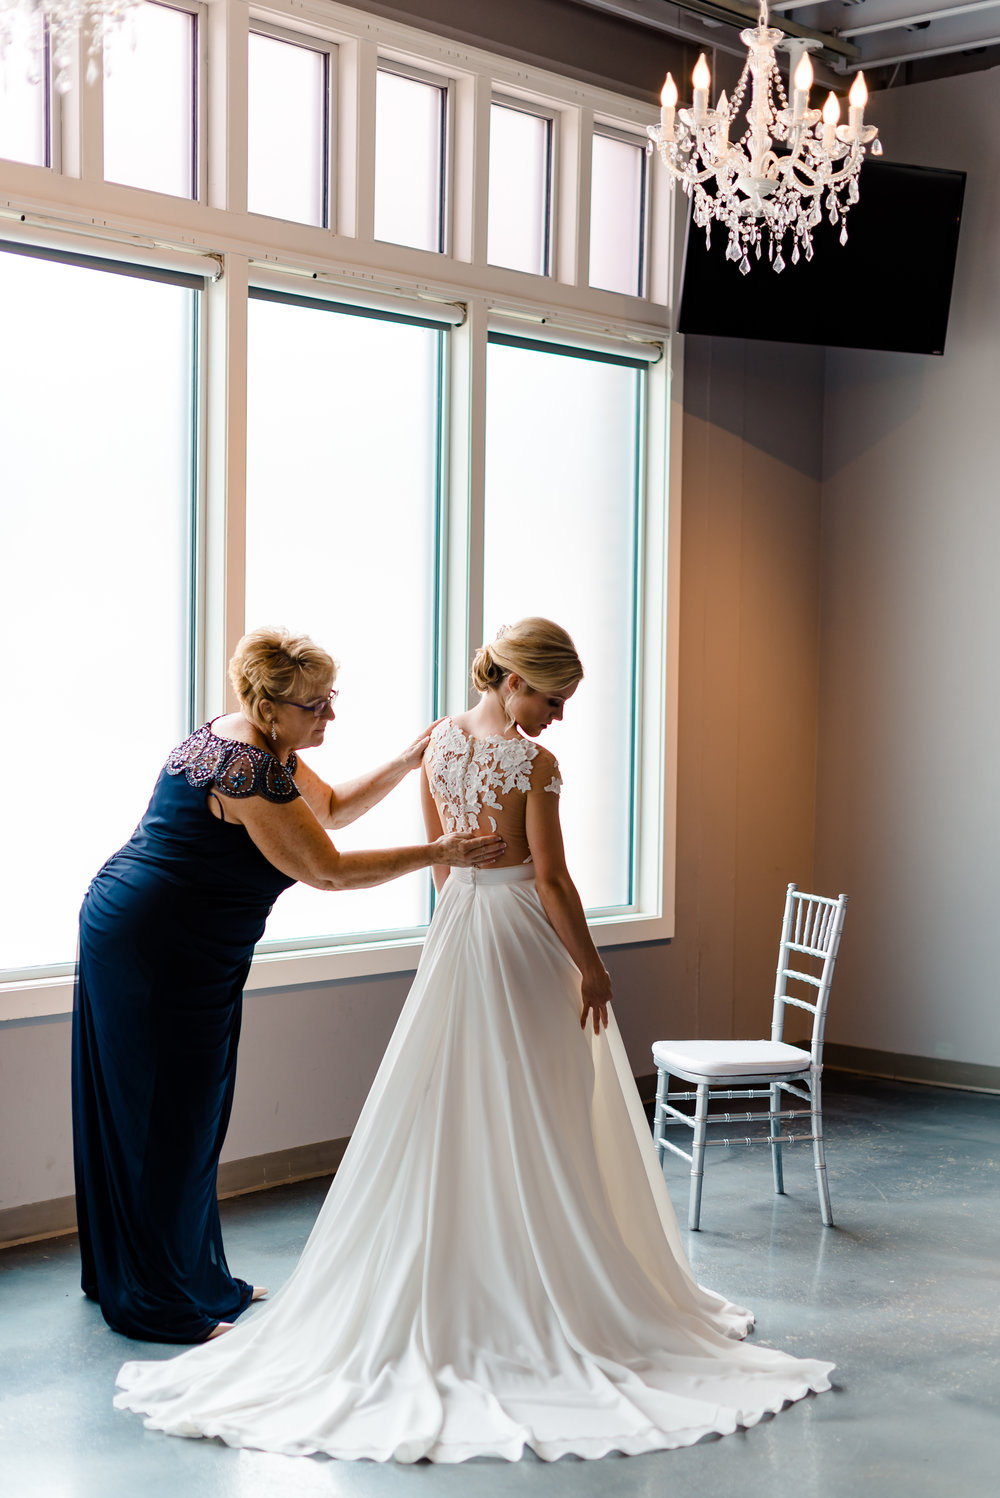 Muse Event Center Wedding - Bride Getting Ready - Romantic Wedding Photographer MN